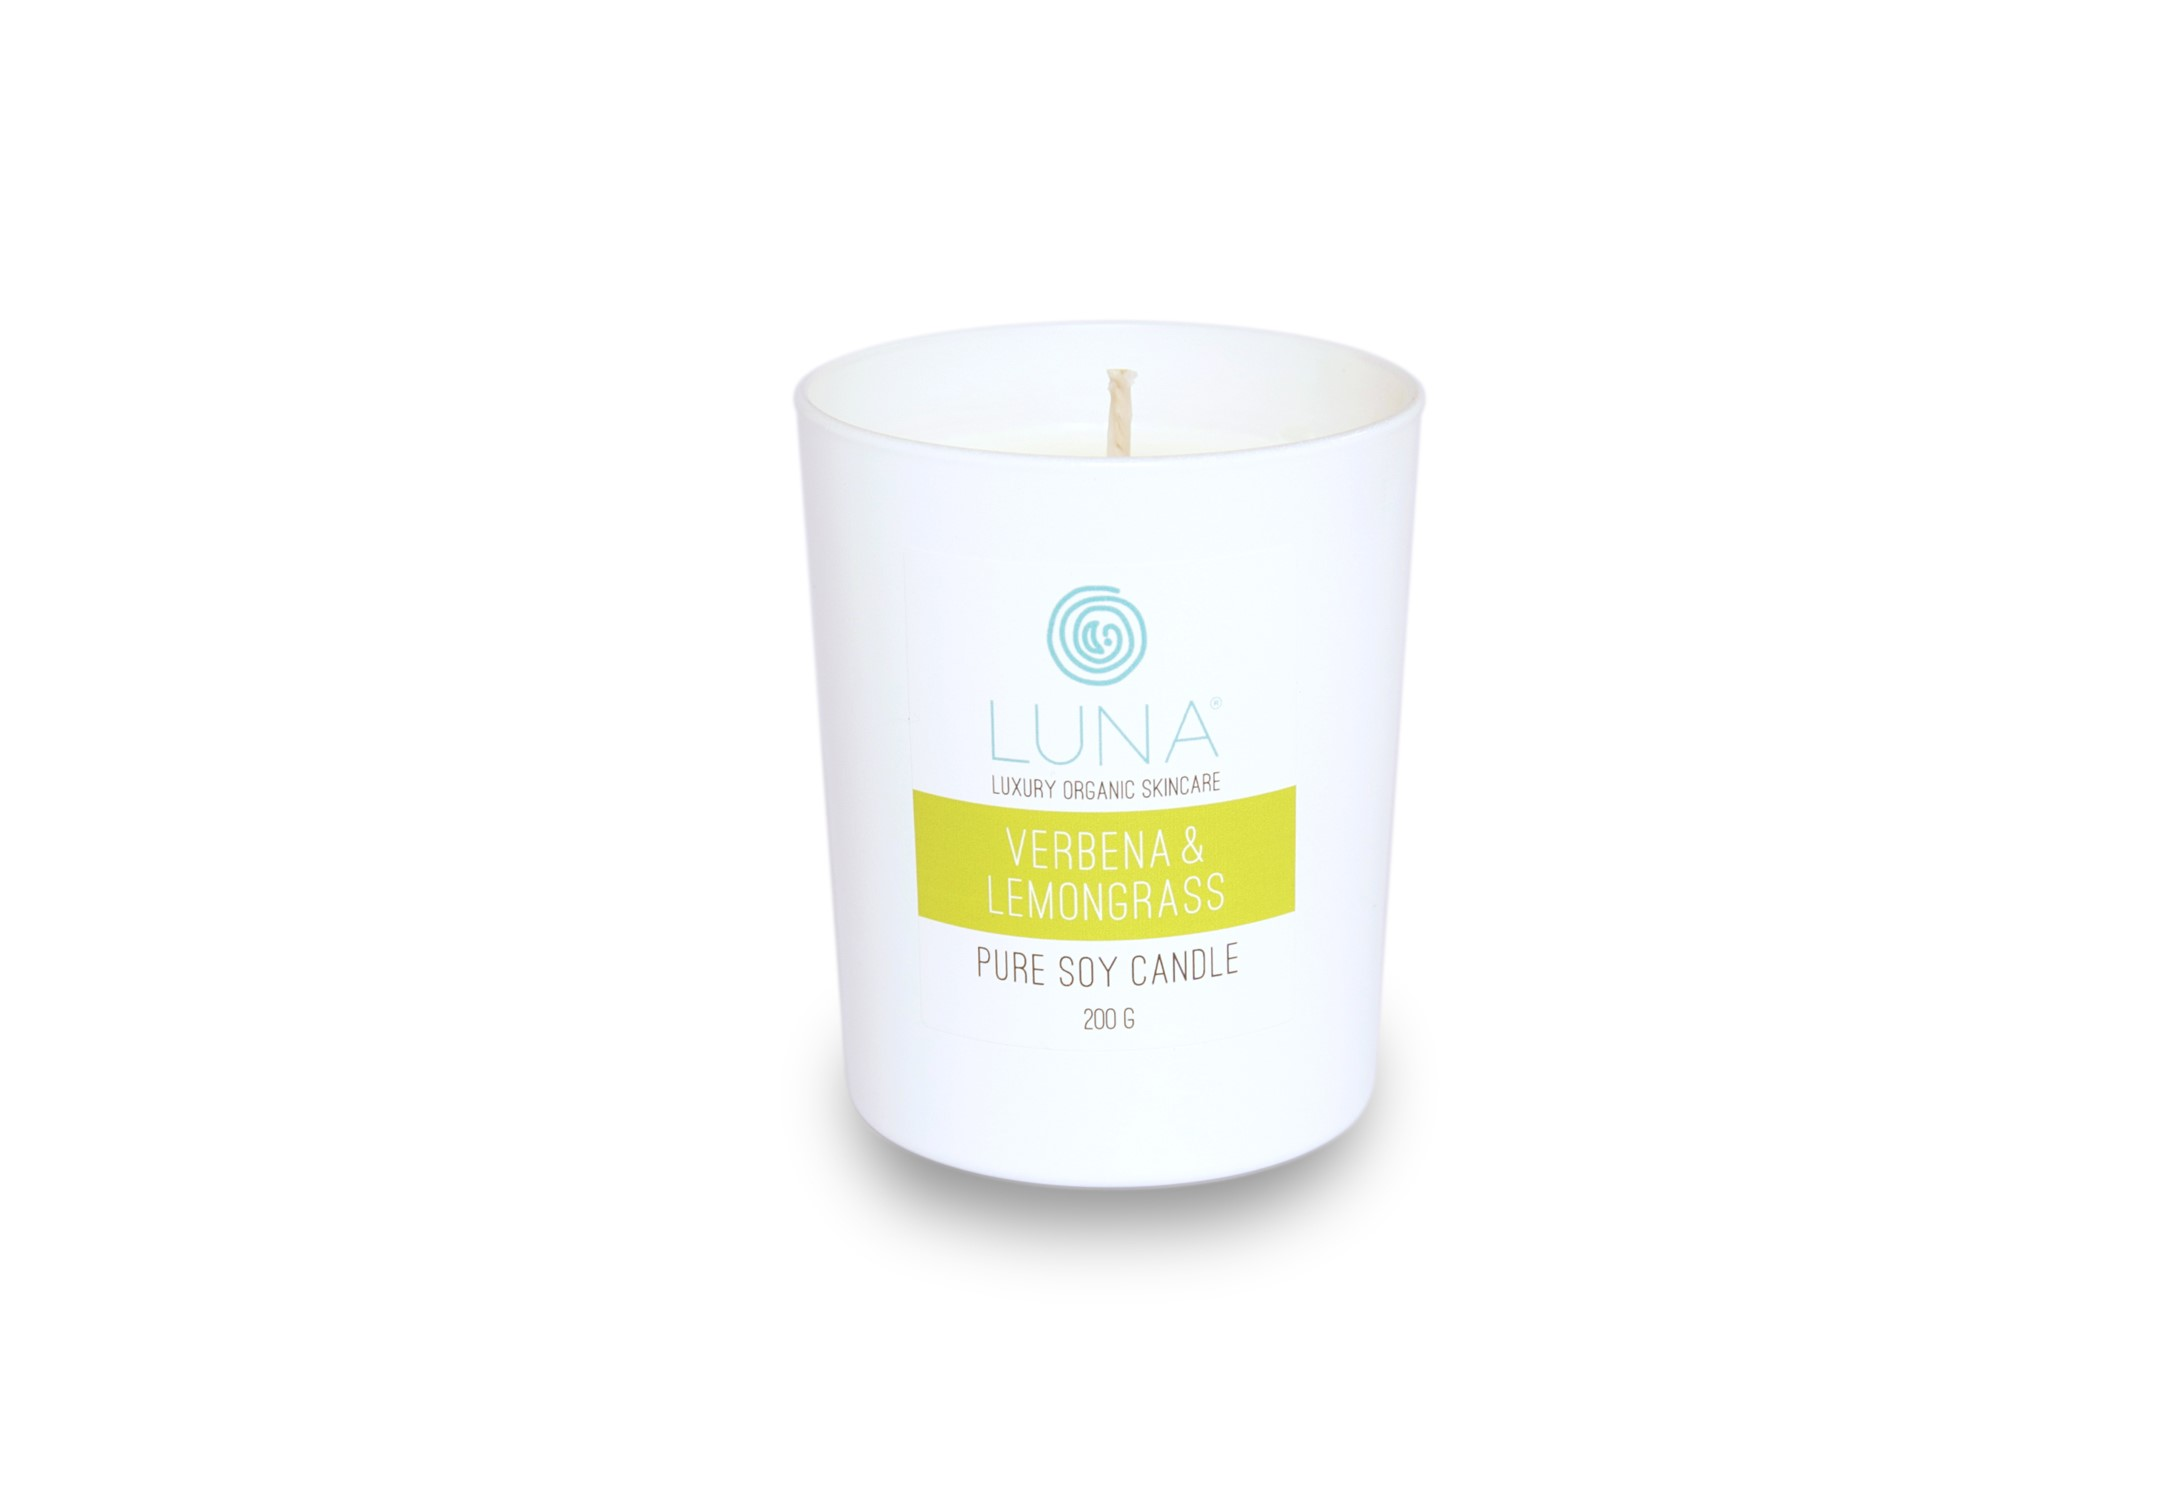 Verbena & Lemongrass Candle